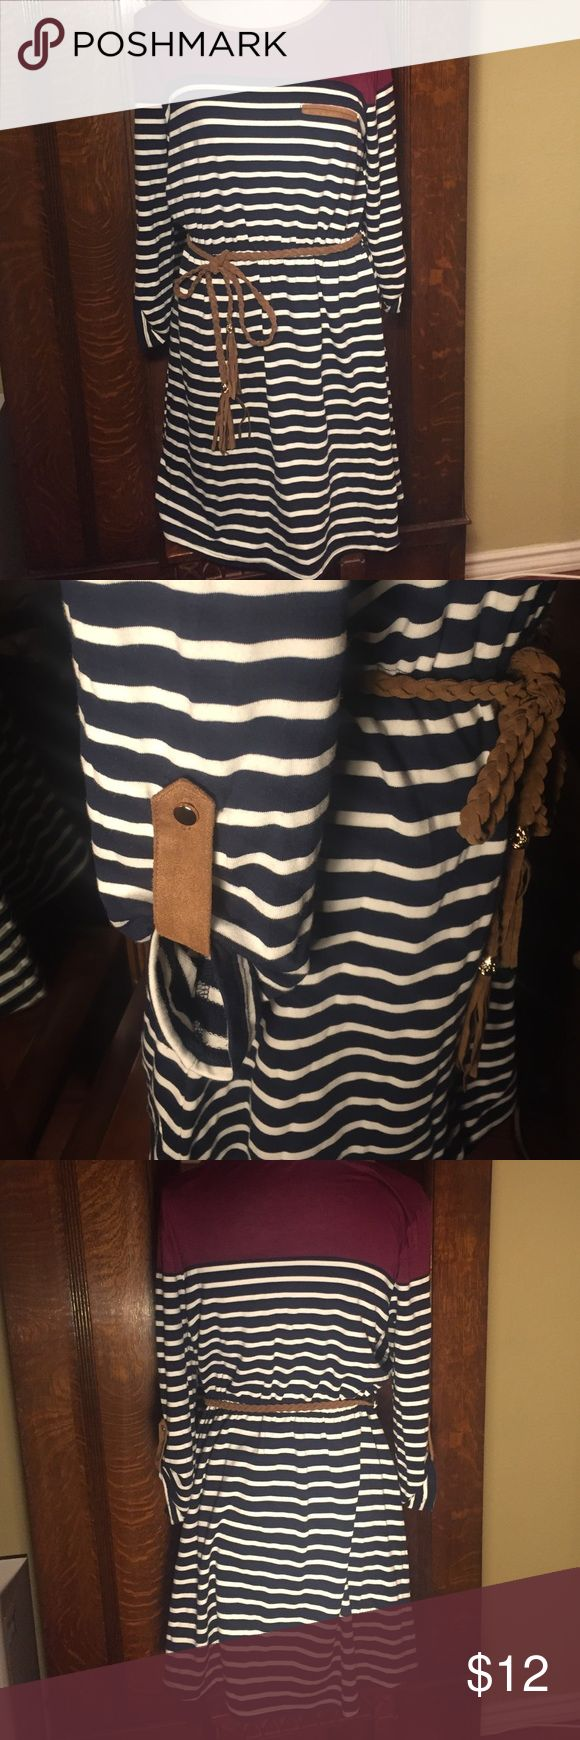 NWOT Navy striped dress Navy striped dress with brown belt and gold and brown accents on sleeve. Says it's a large but fits like a medium. Papaya Dresses Mini